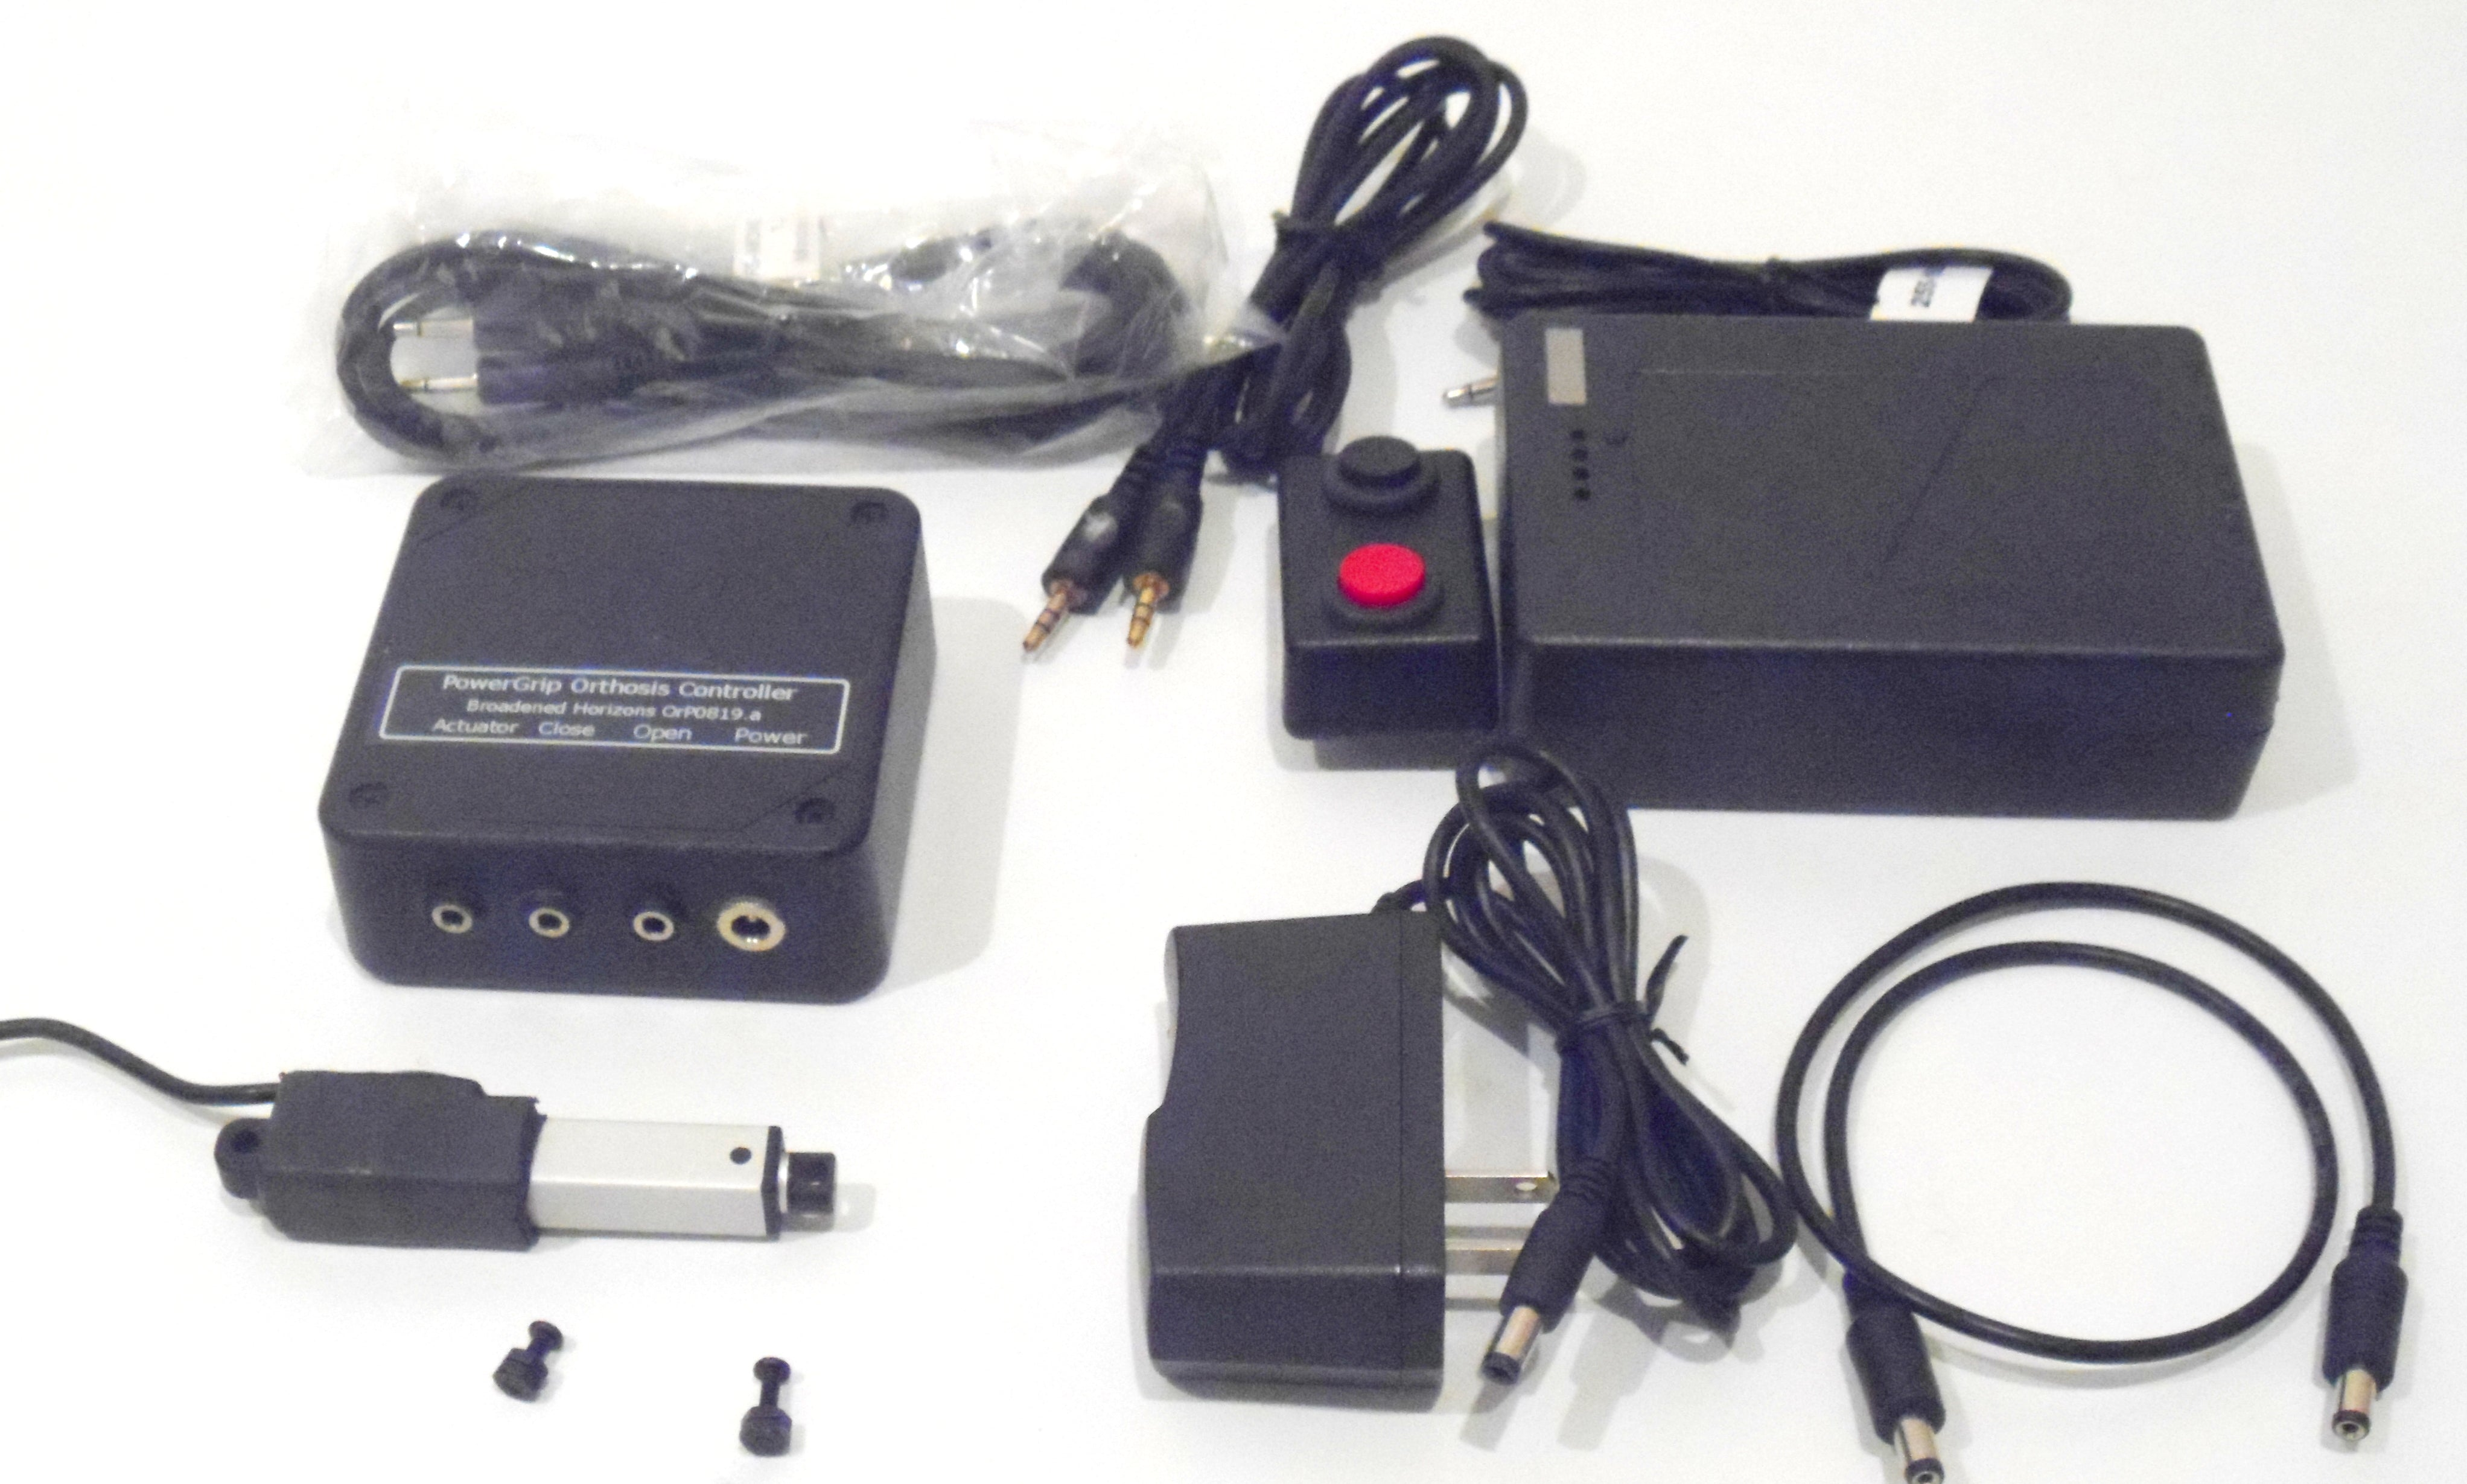 PowerGrip Controller Kit with Roughneck Dual Pushbutton Switches and Lithium-Ion Battery Pack